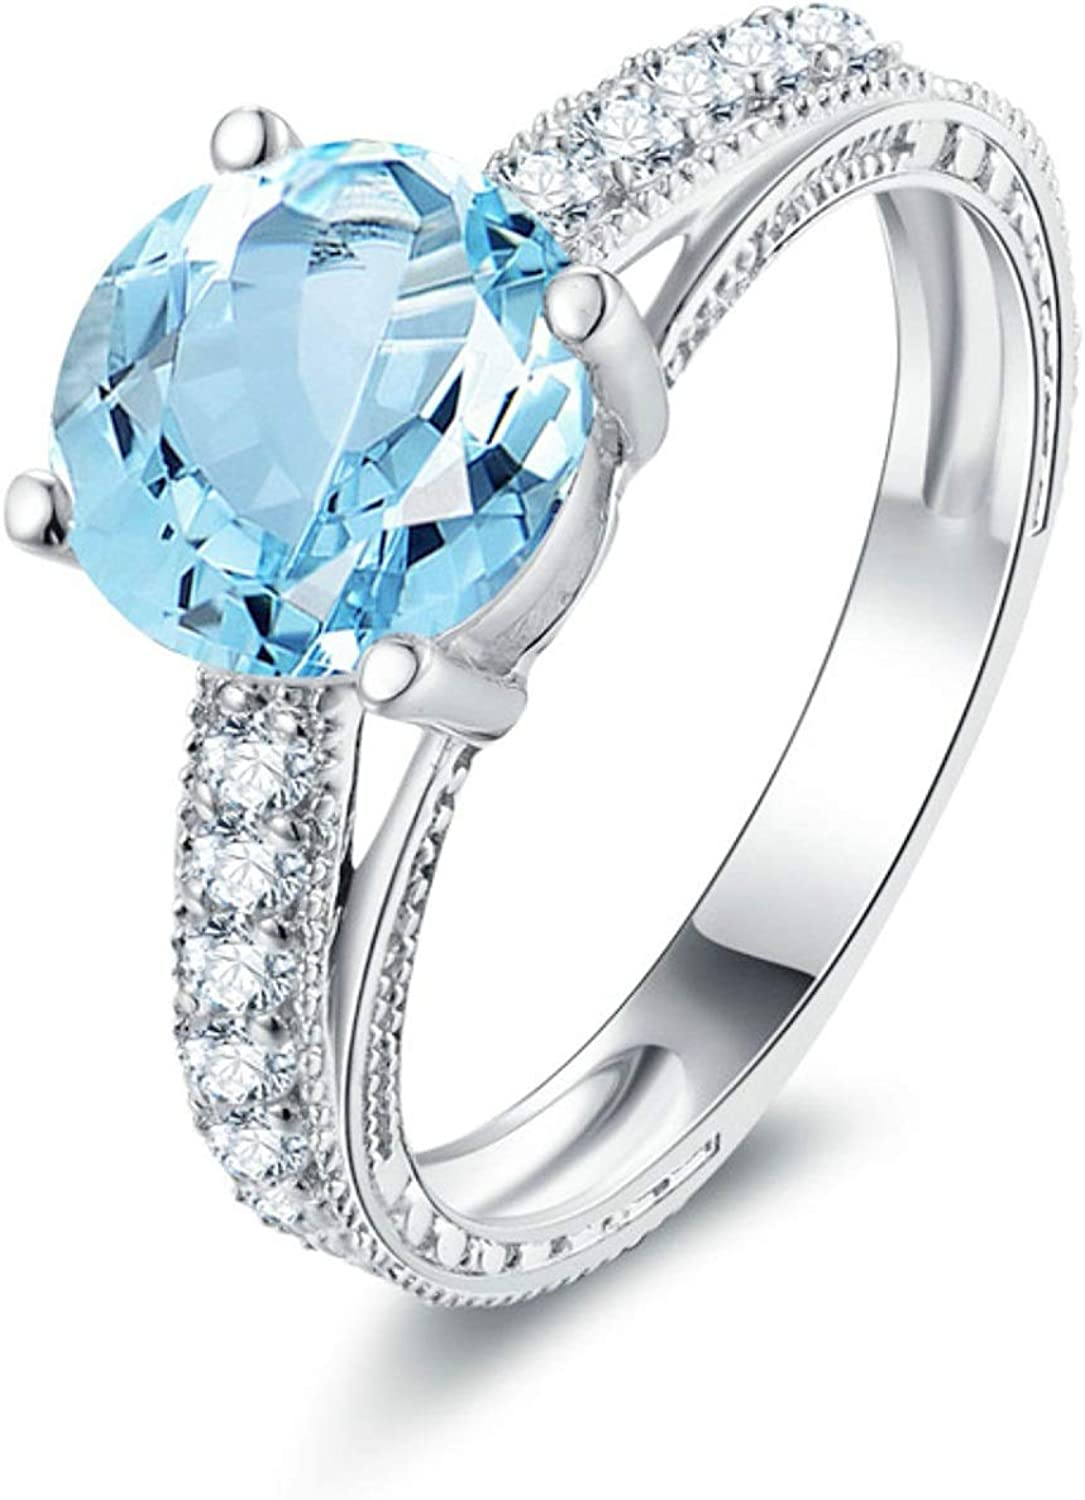 AMDXD Jewelry 925 Sterling Silver Engagement Rings Women Blue Round Cut Topaz Ring